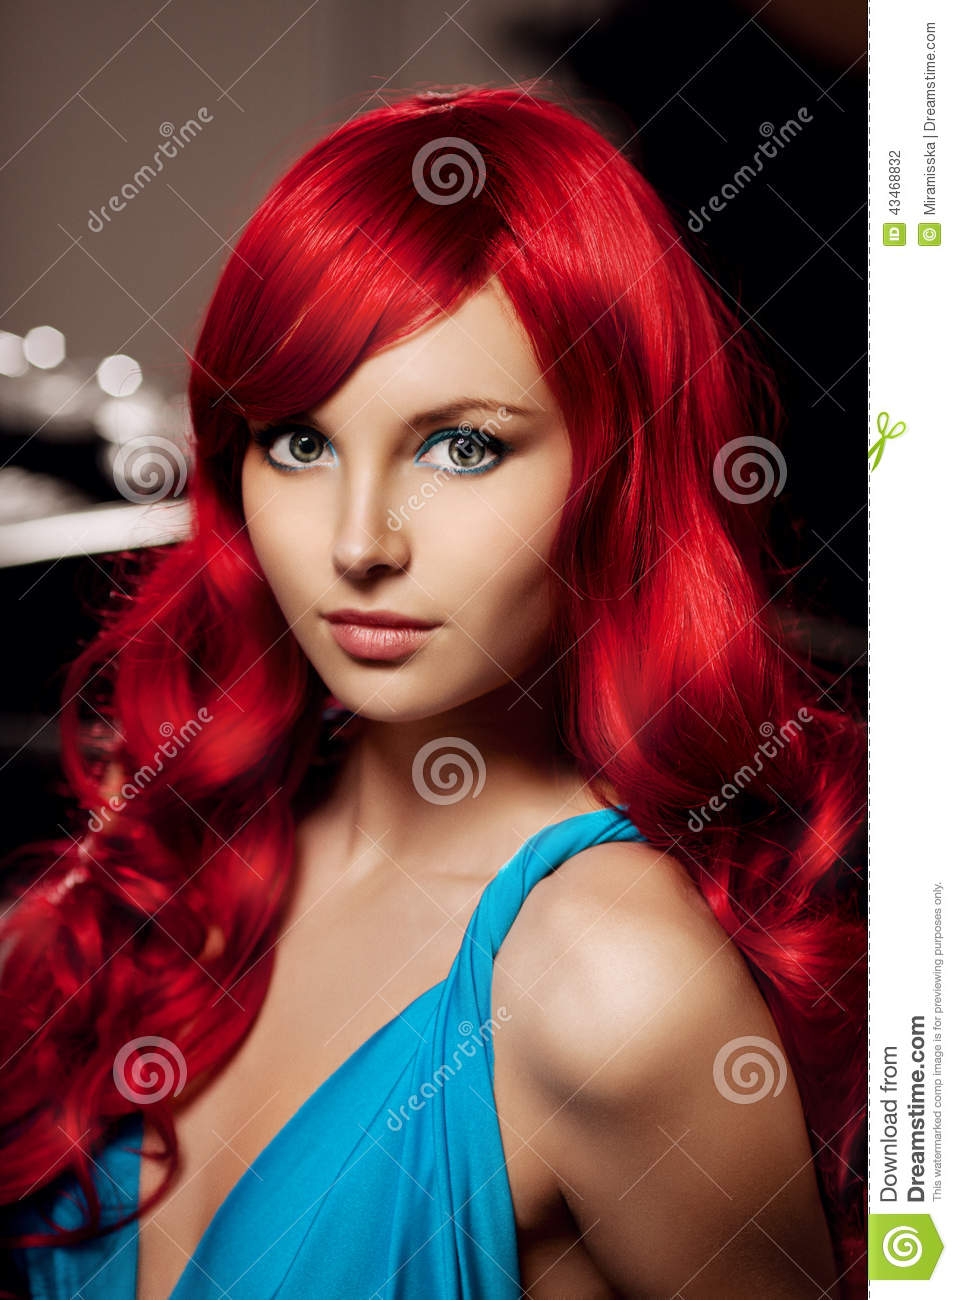 jeune femme avec de longs beaux cheveux rouges luxueux dans un bleu flb photo stock image du. Black Bedroom Furniture Sets. Home Design Ideas